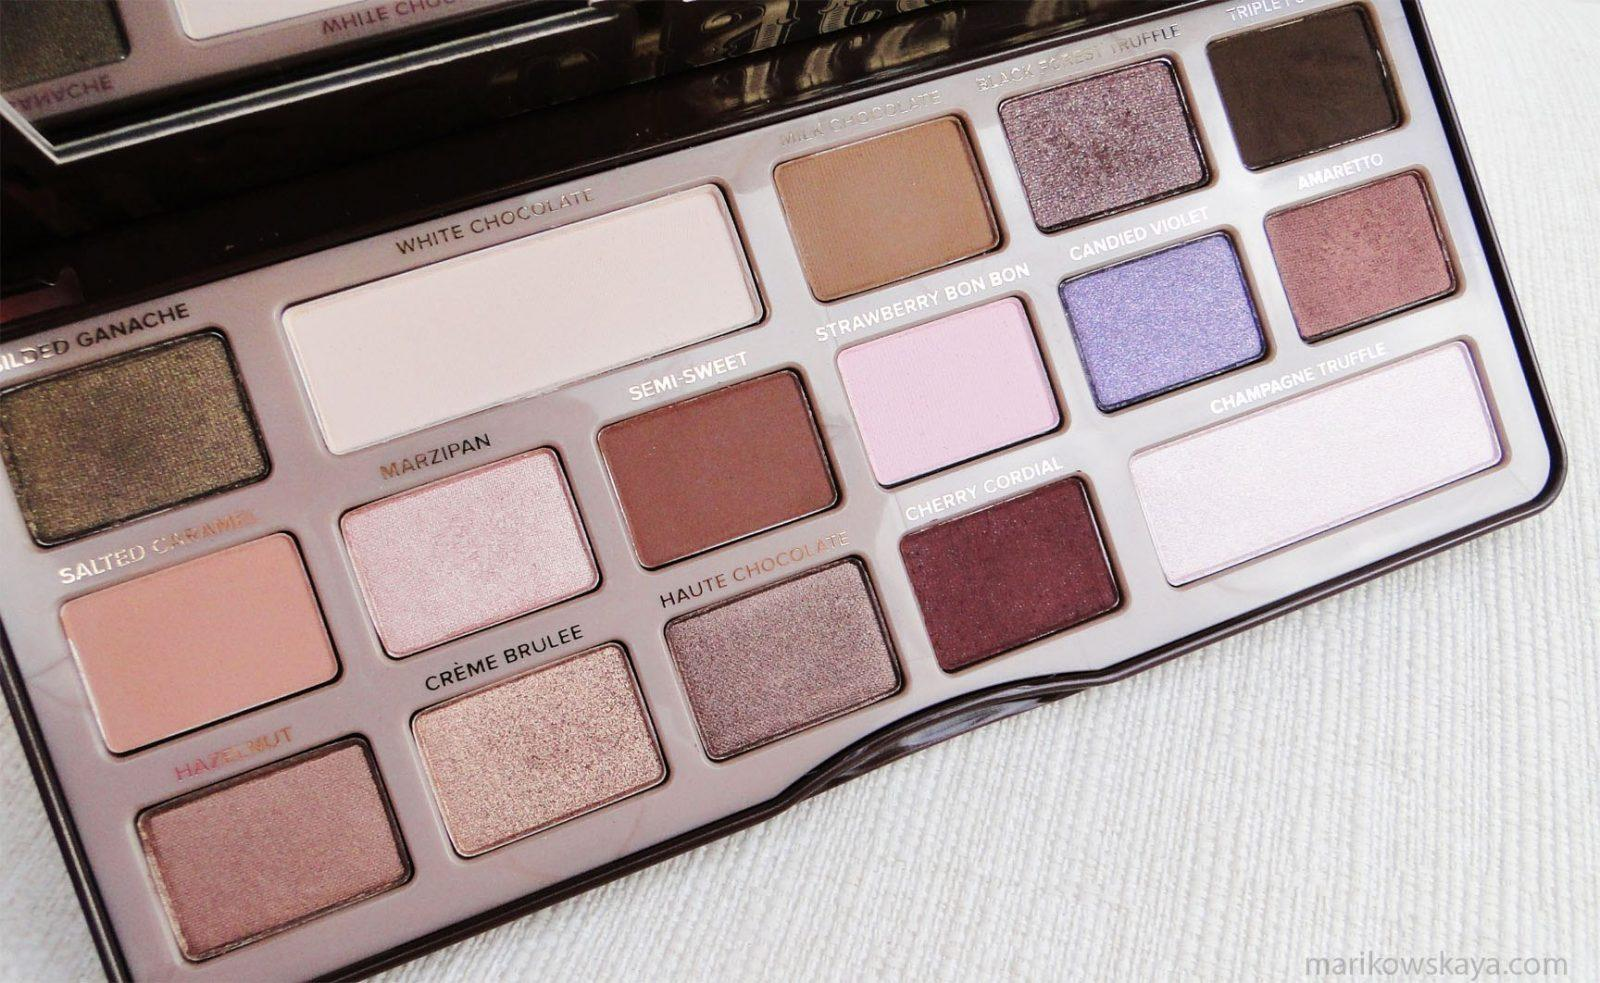 descubrimientos 2015 chocolate bar too faced 2